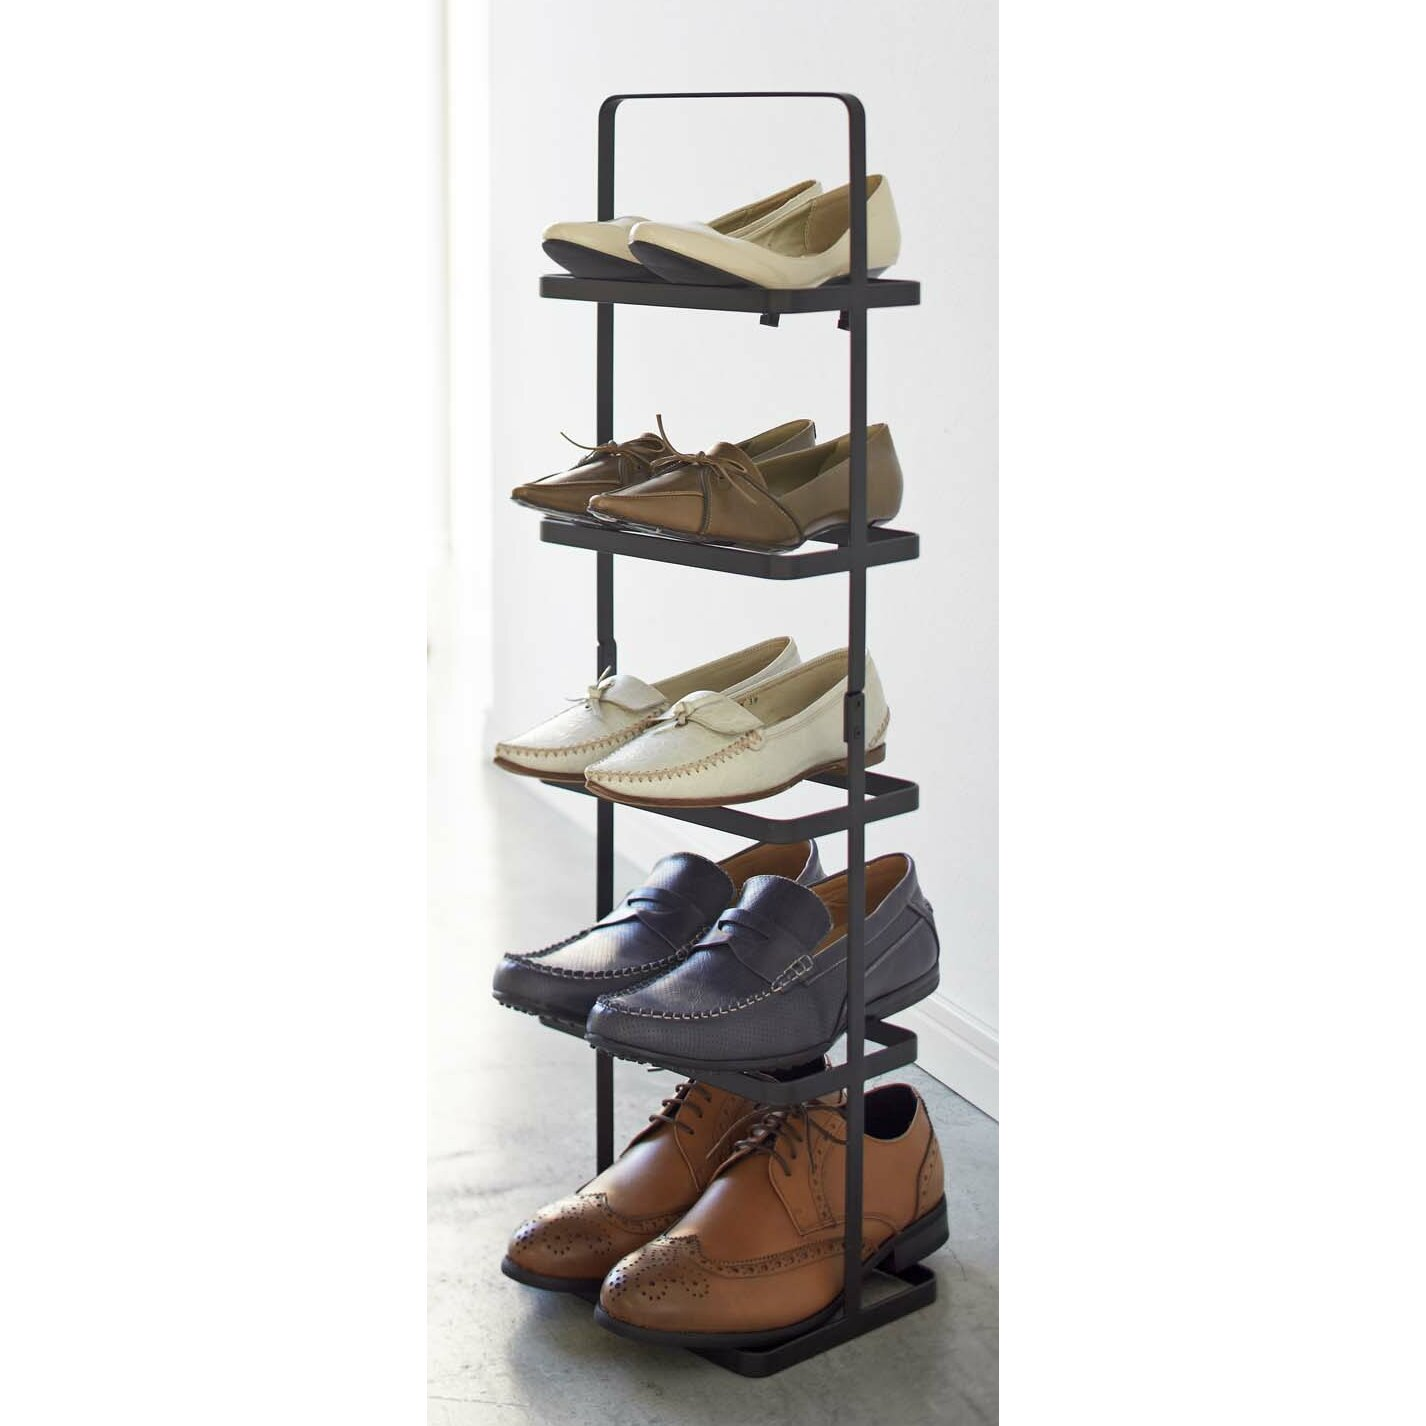 Yamazaki Usa Tower 5 Tier Shoe Rack Amp Reviews Wayfair